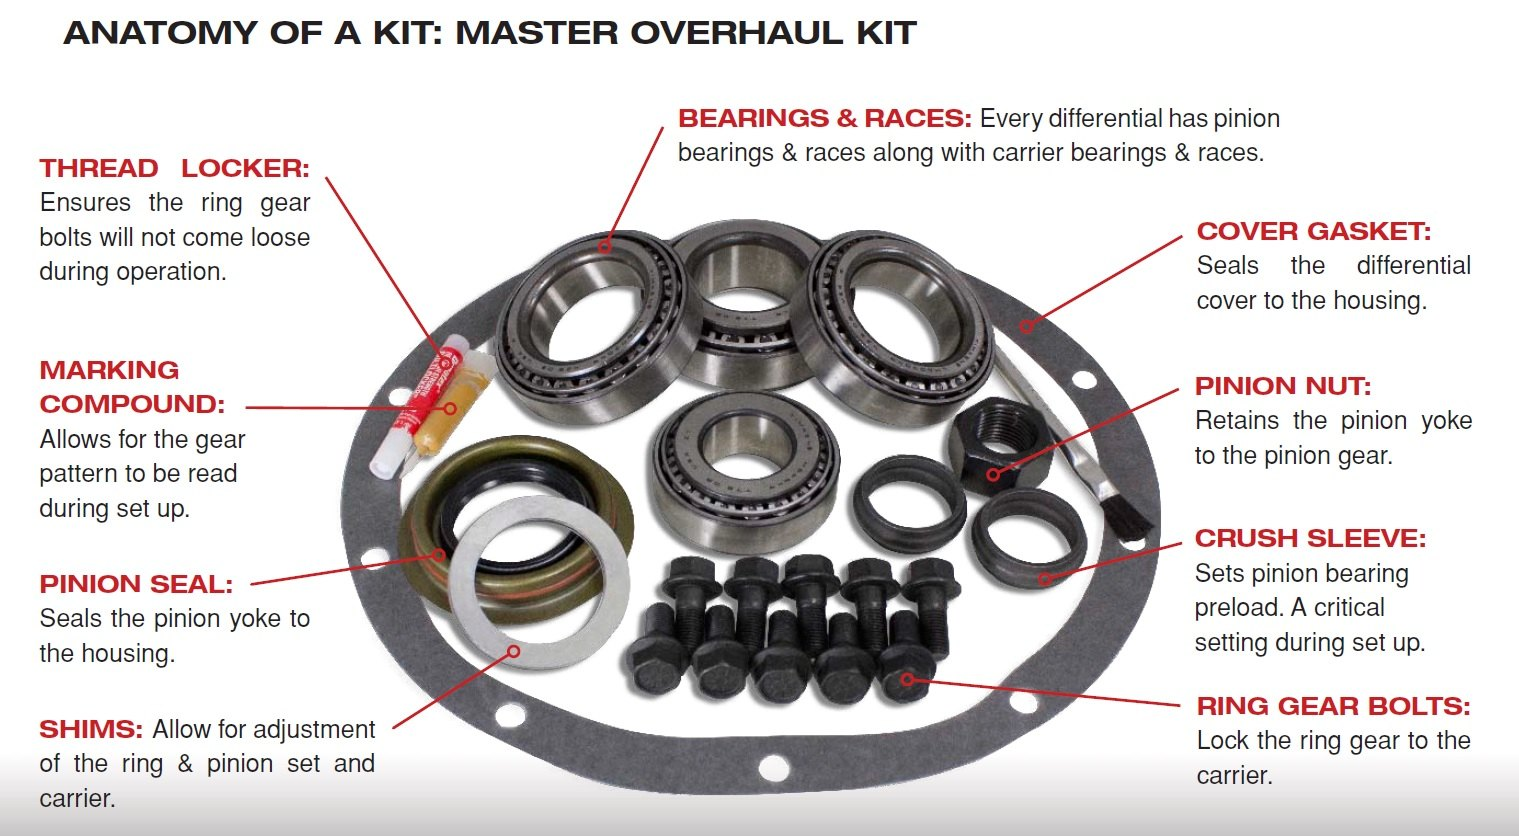 This is a great opportunity to replace the bearings and seals on your axle shaft to insure optimal performance of your differential